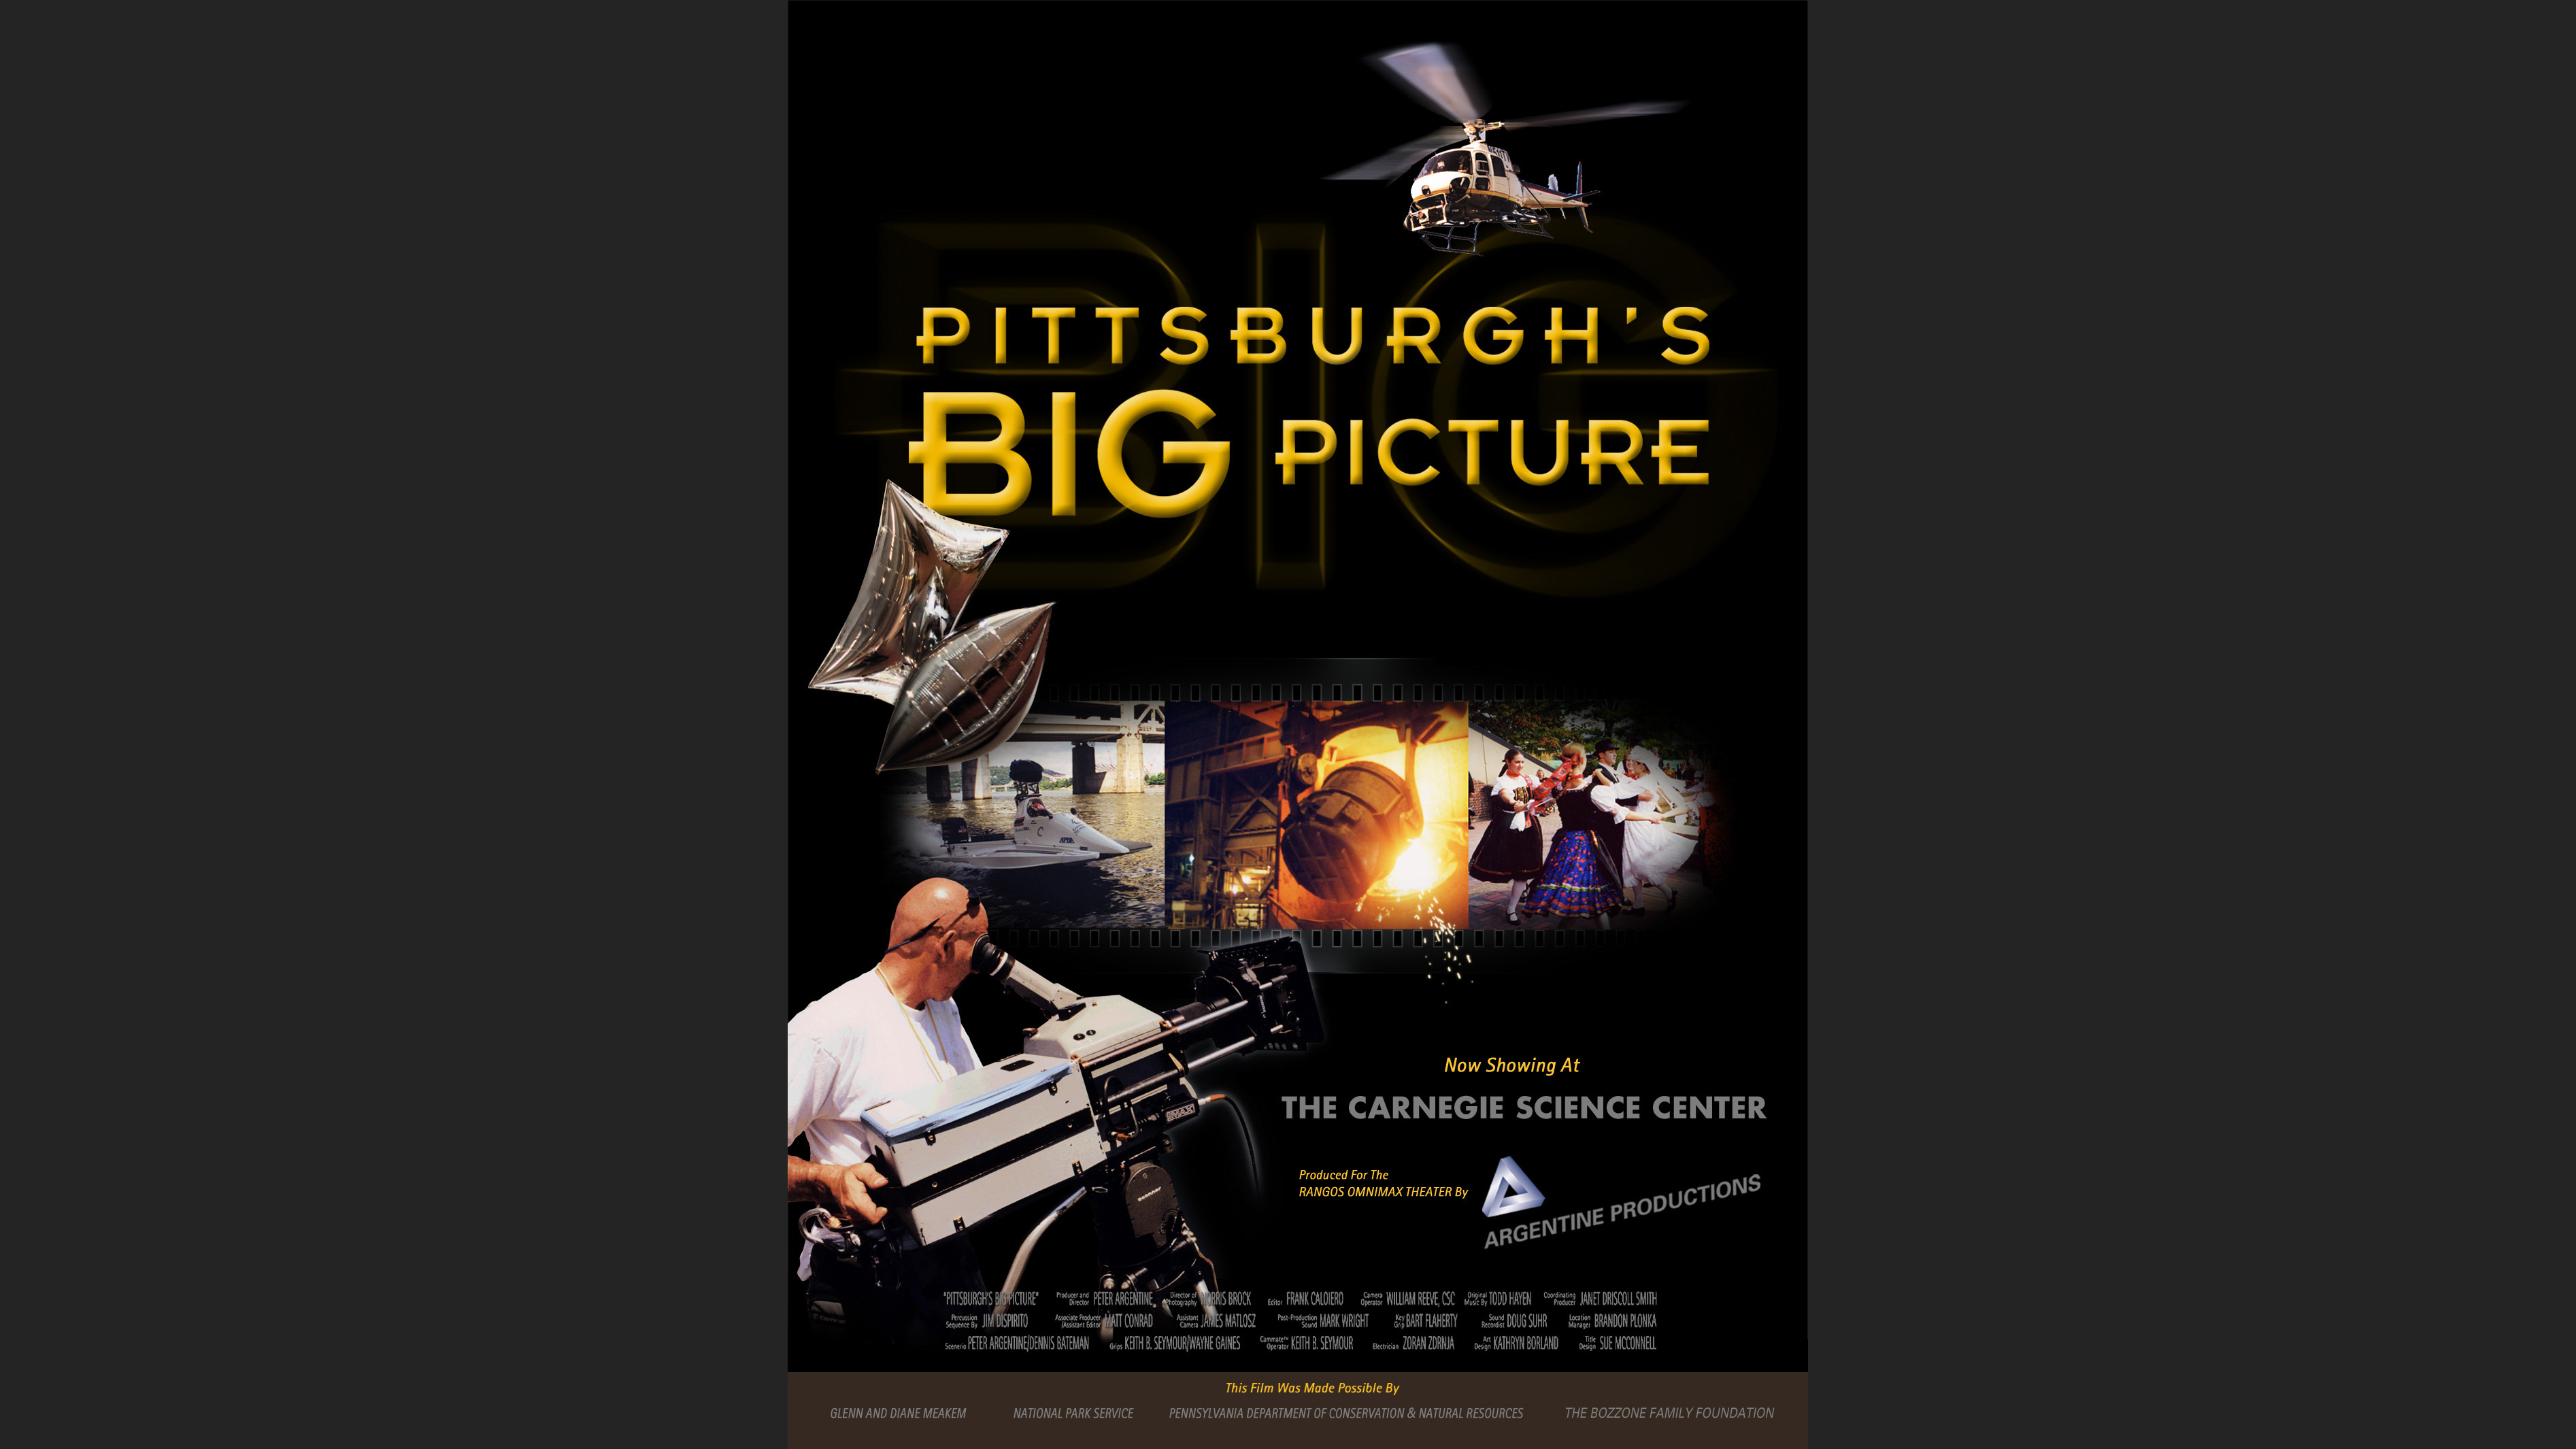 poster for pittsburgh's big picture